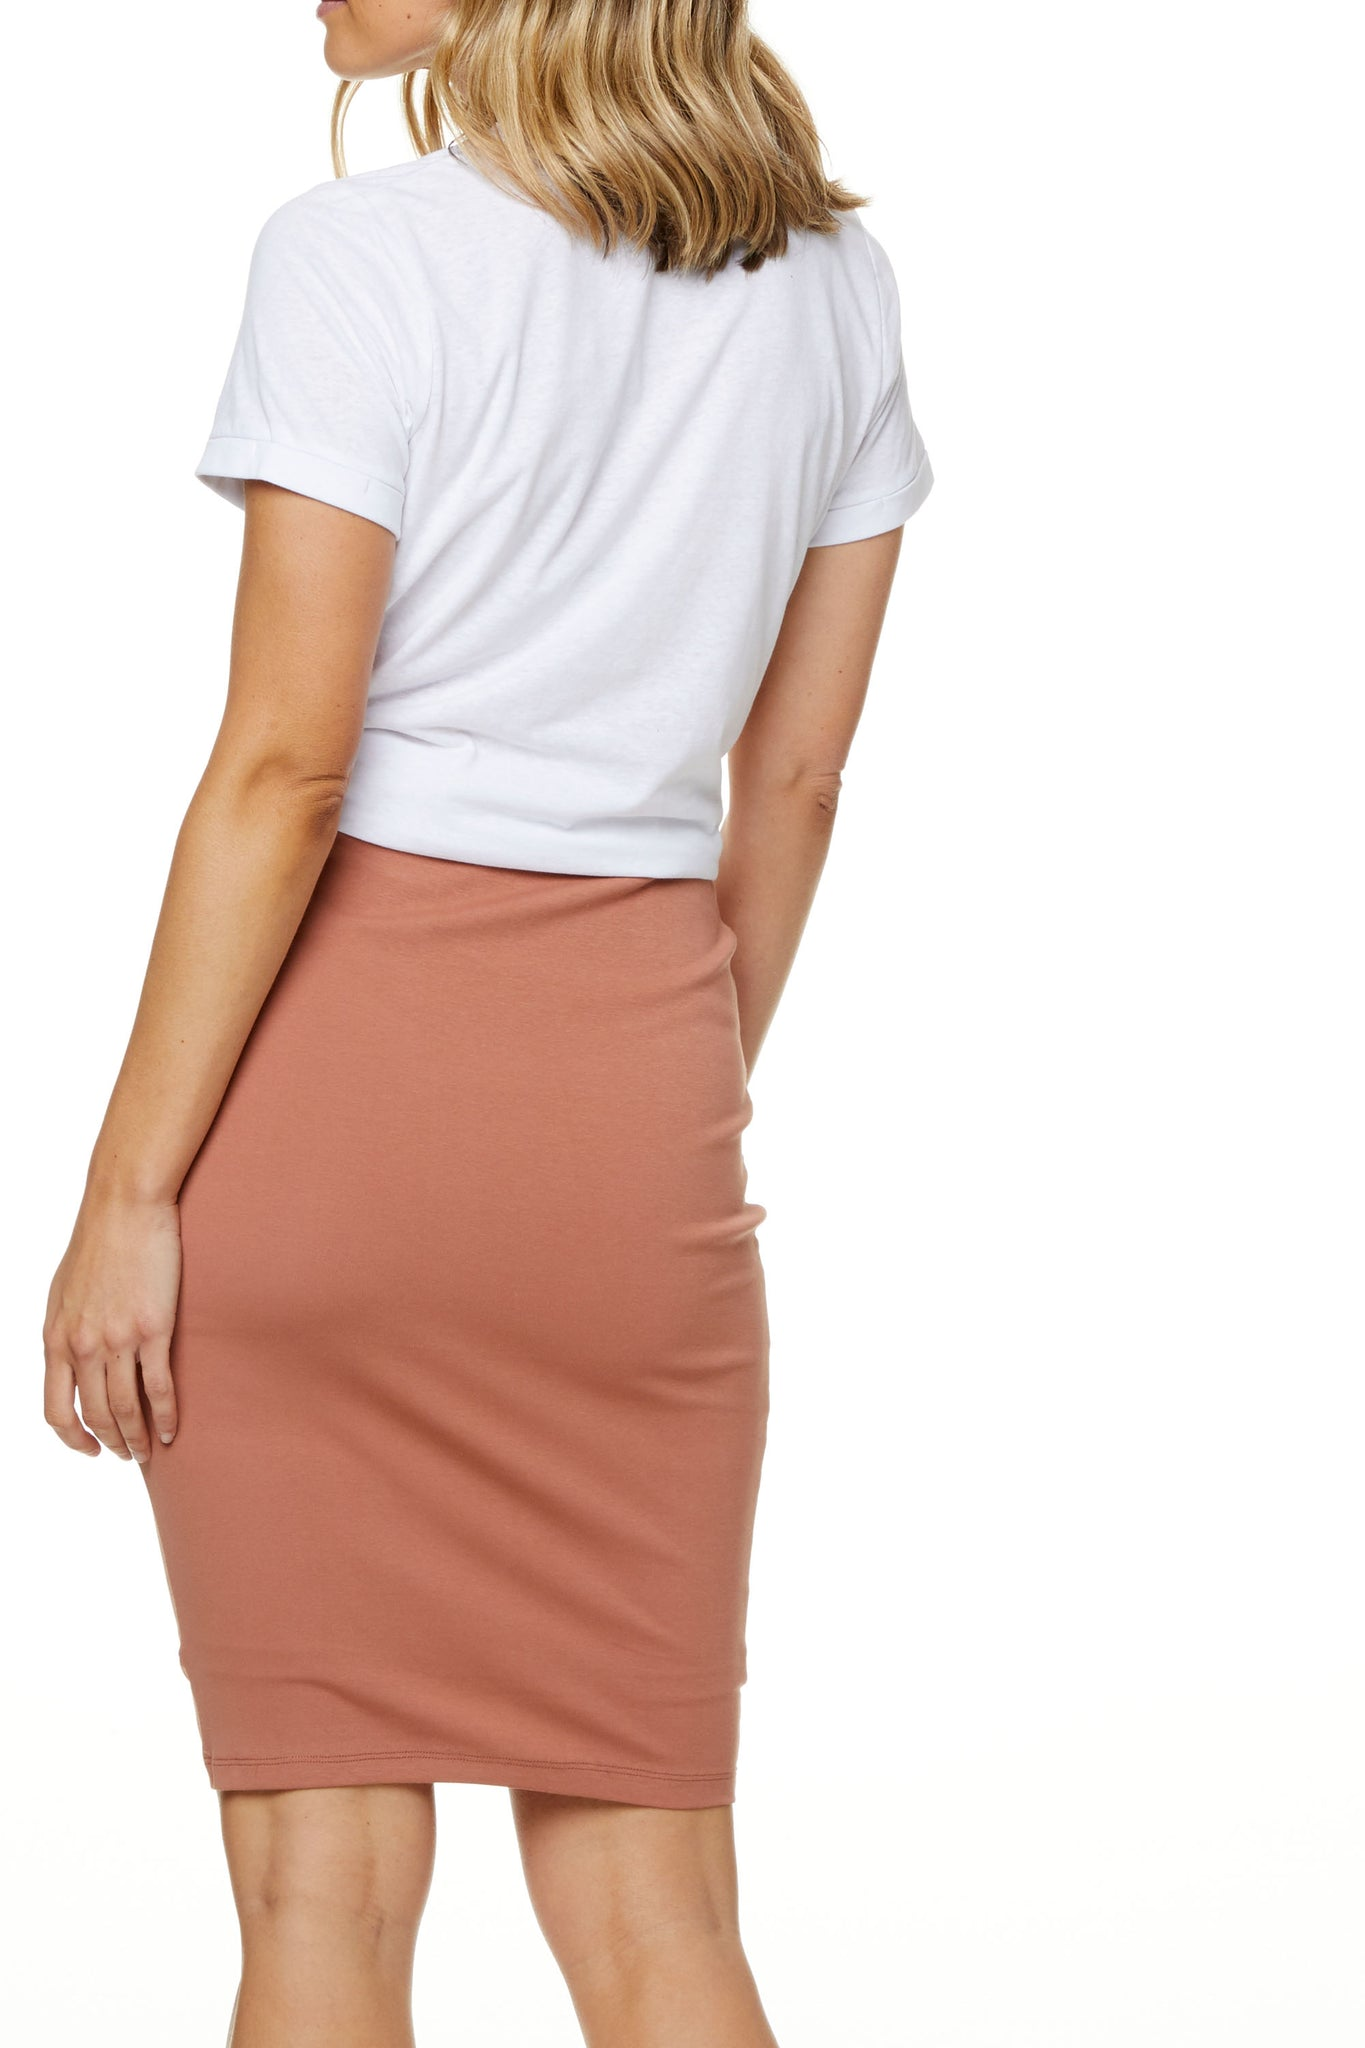 Bodycon Maternity Skirt Image 8